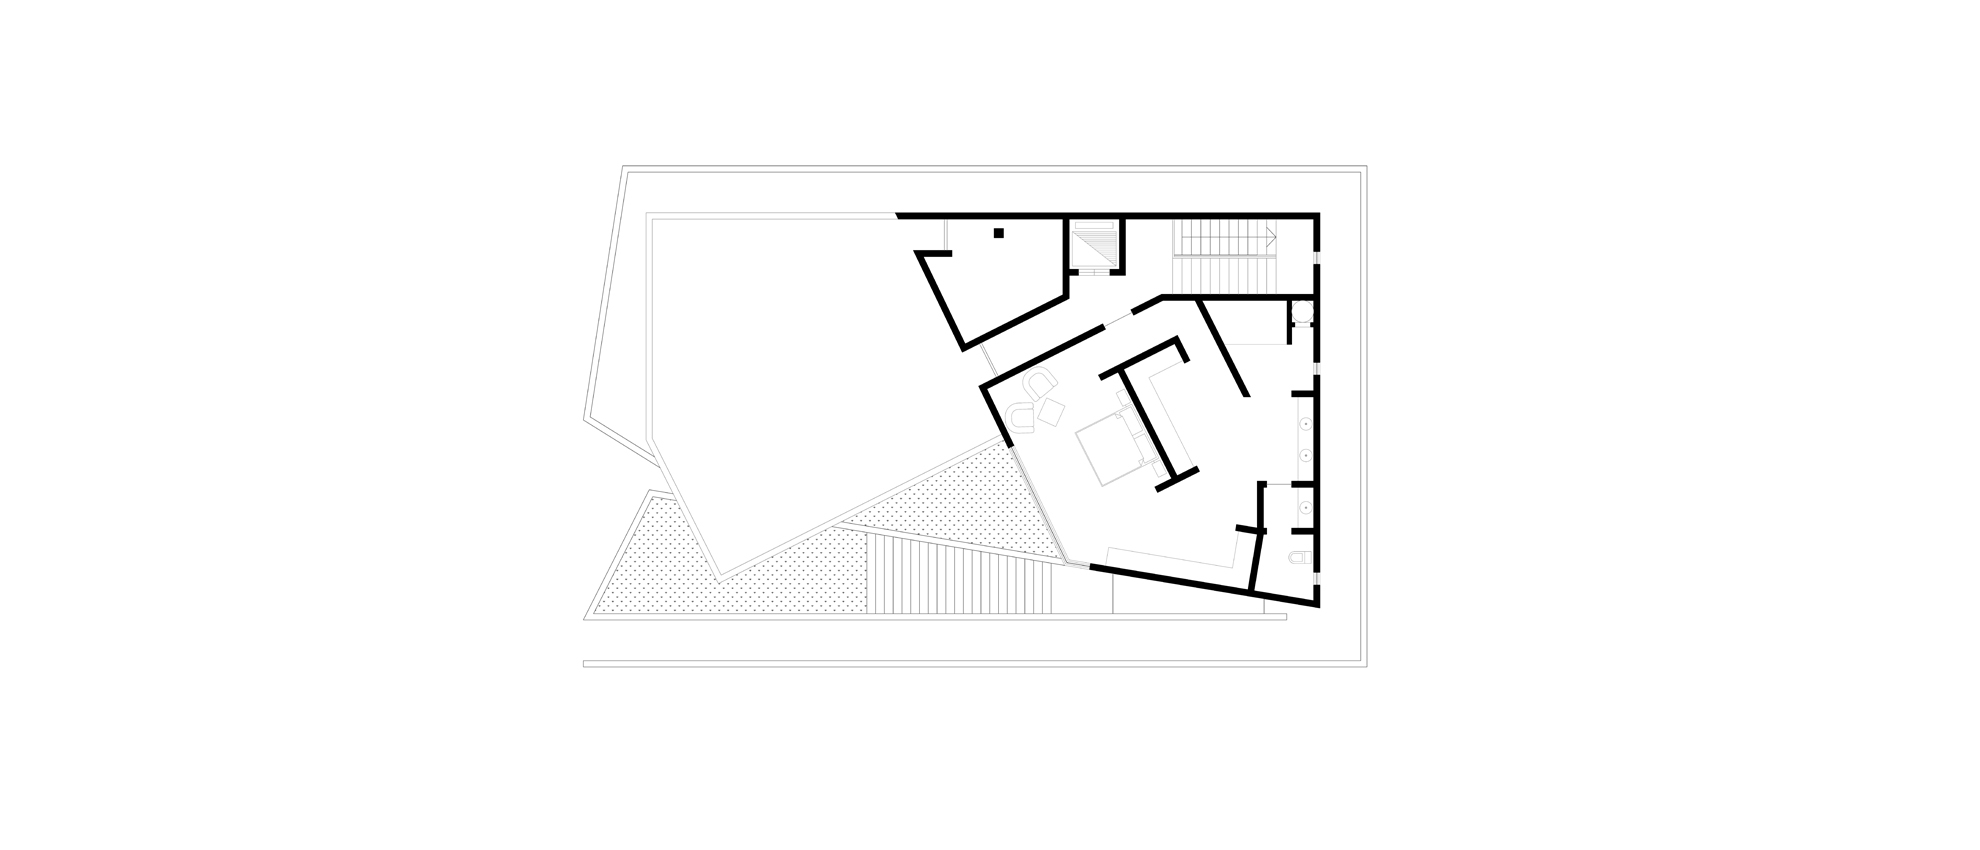 1Roof Floor Plan